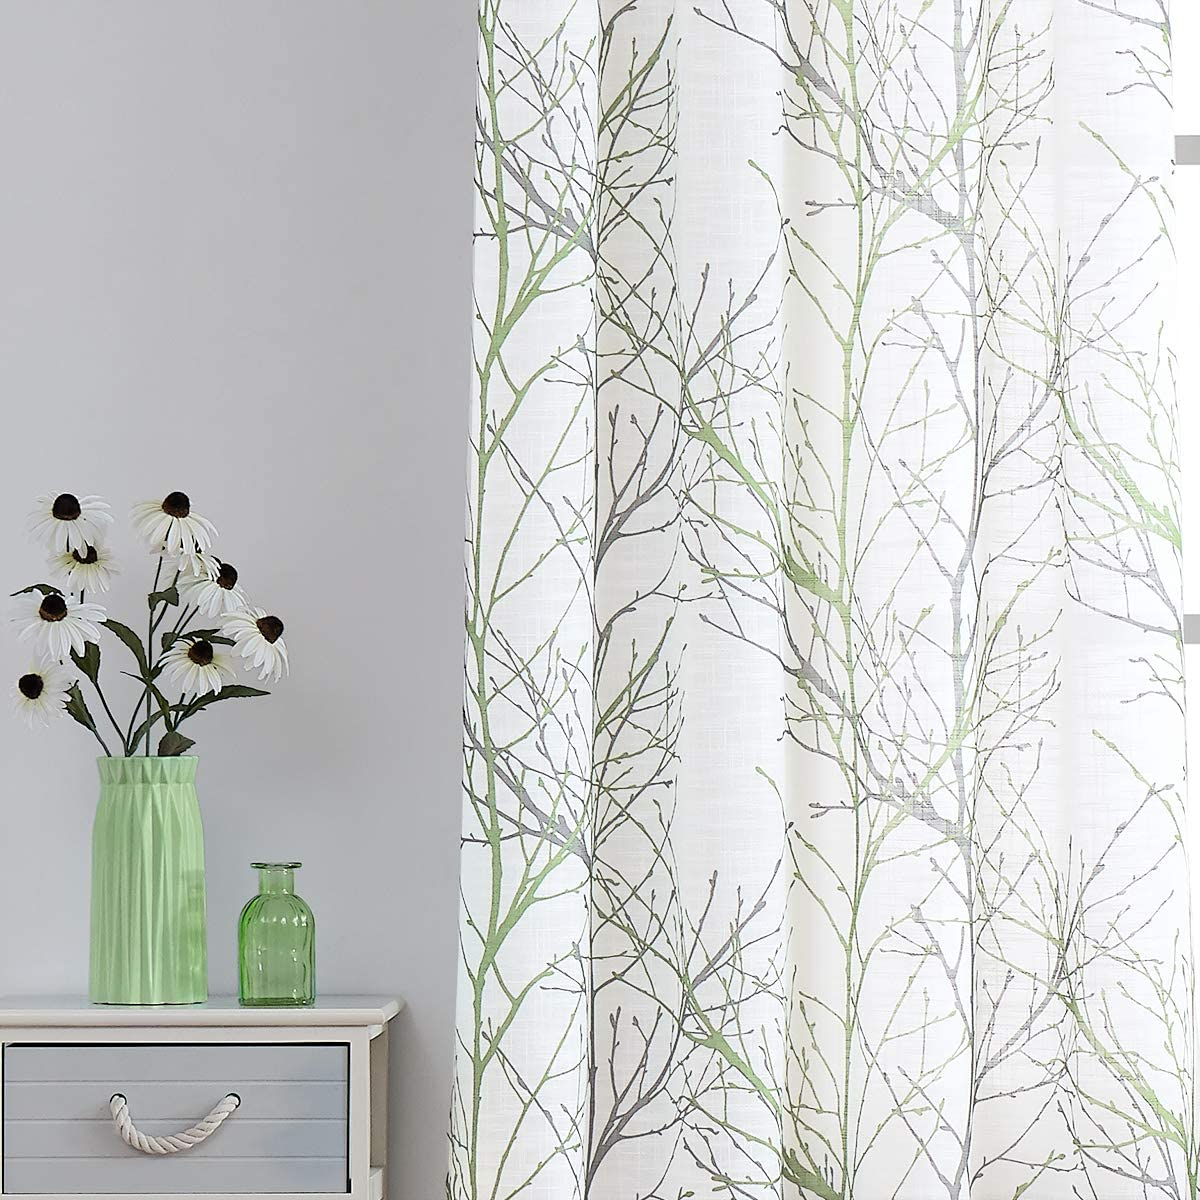 Fmfunctex White Semi-Sheer Curtains 96-inches Long Modern Green and Grey Branches Printing on Linen Textured White Window Treatment Panels for Living Room Bedroom Kitchen Draperies 1 Pair